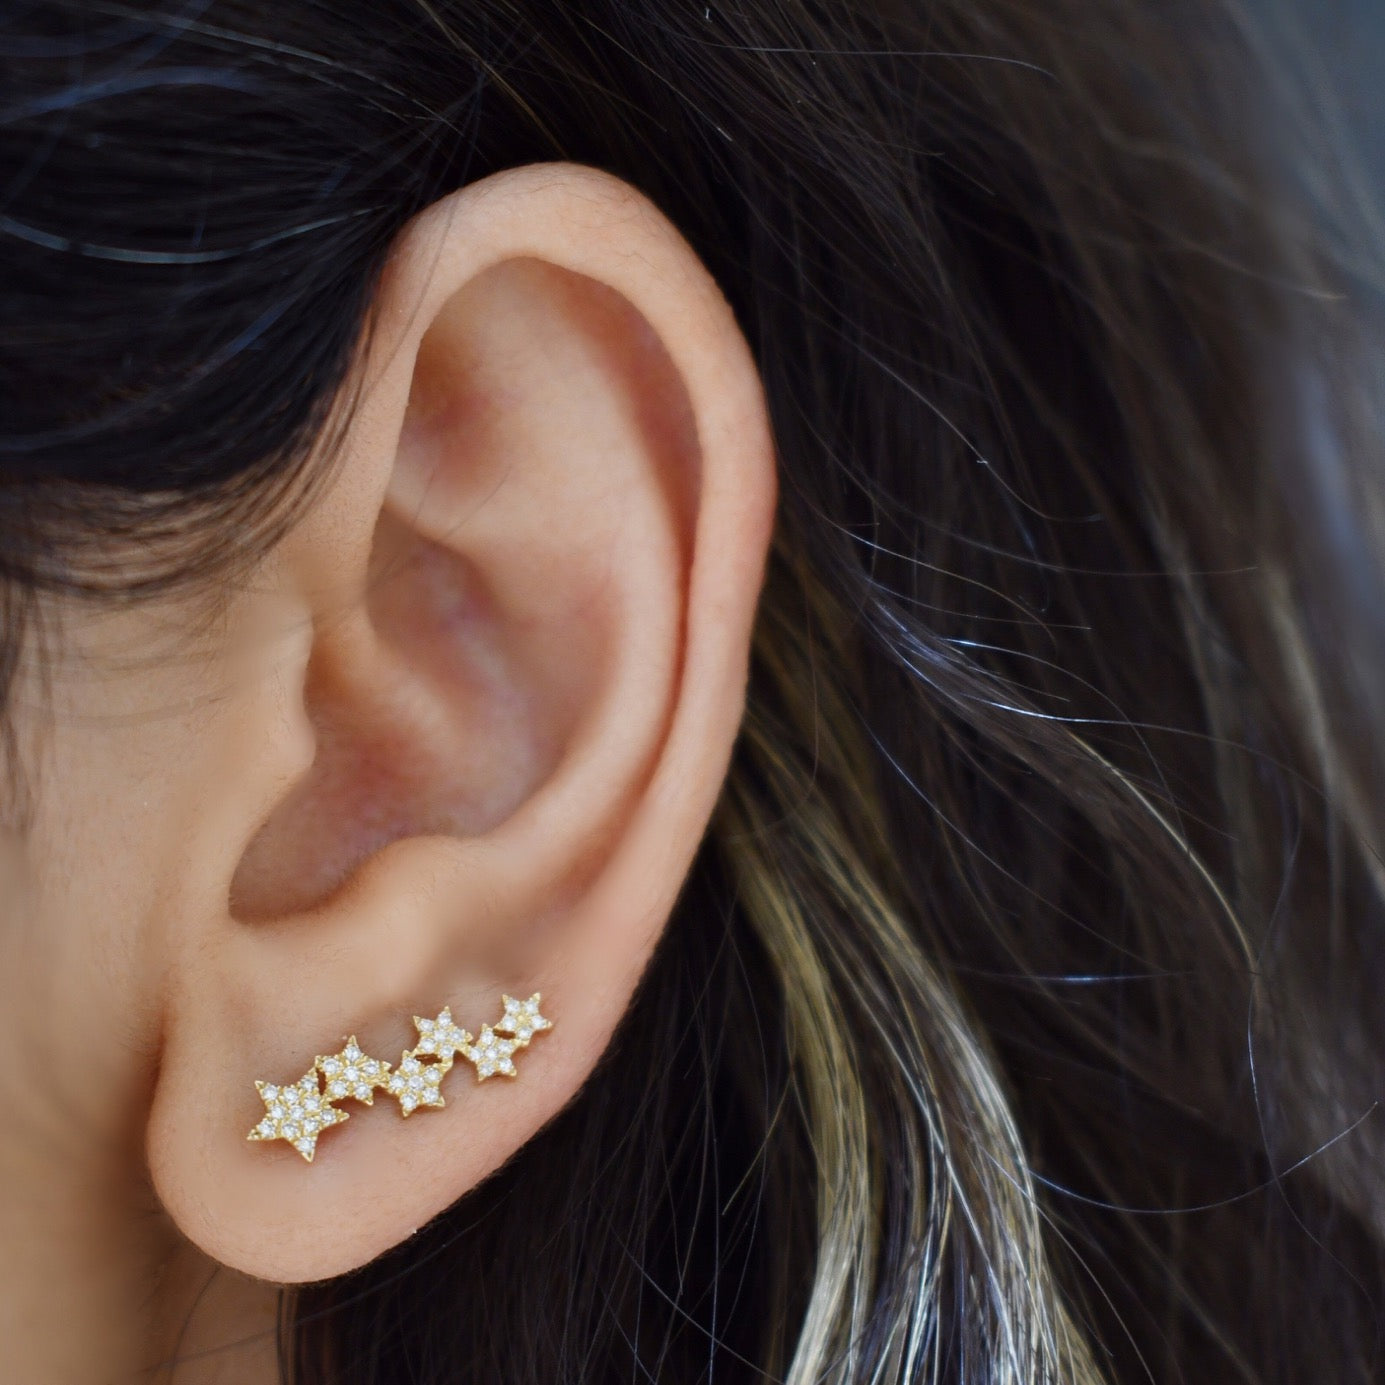 14k Yellow Gold Star Ear Climbers